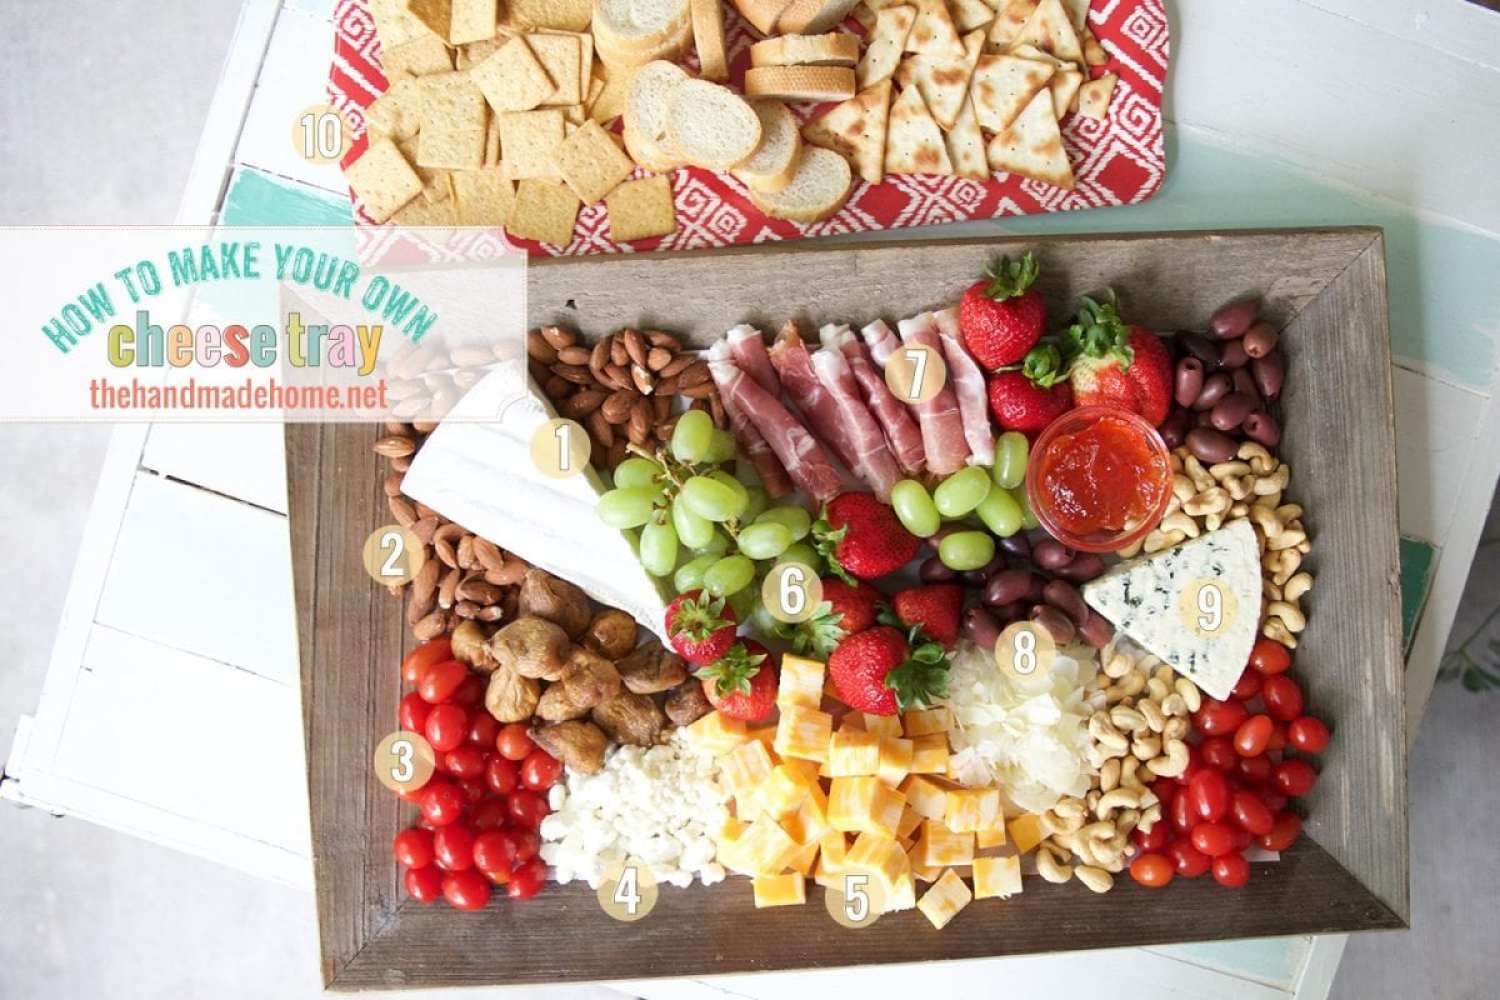 how_to_make_your_own_cheese_tray